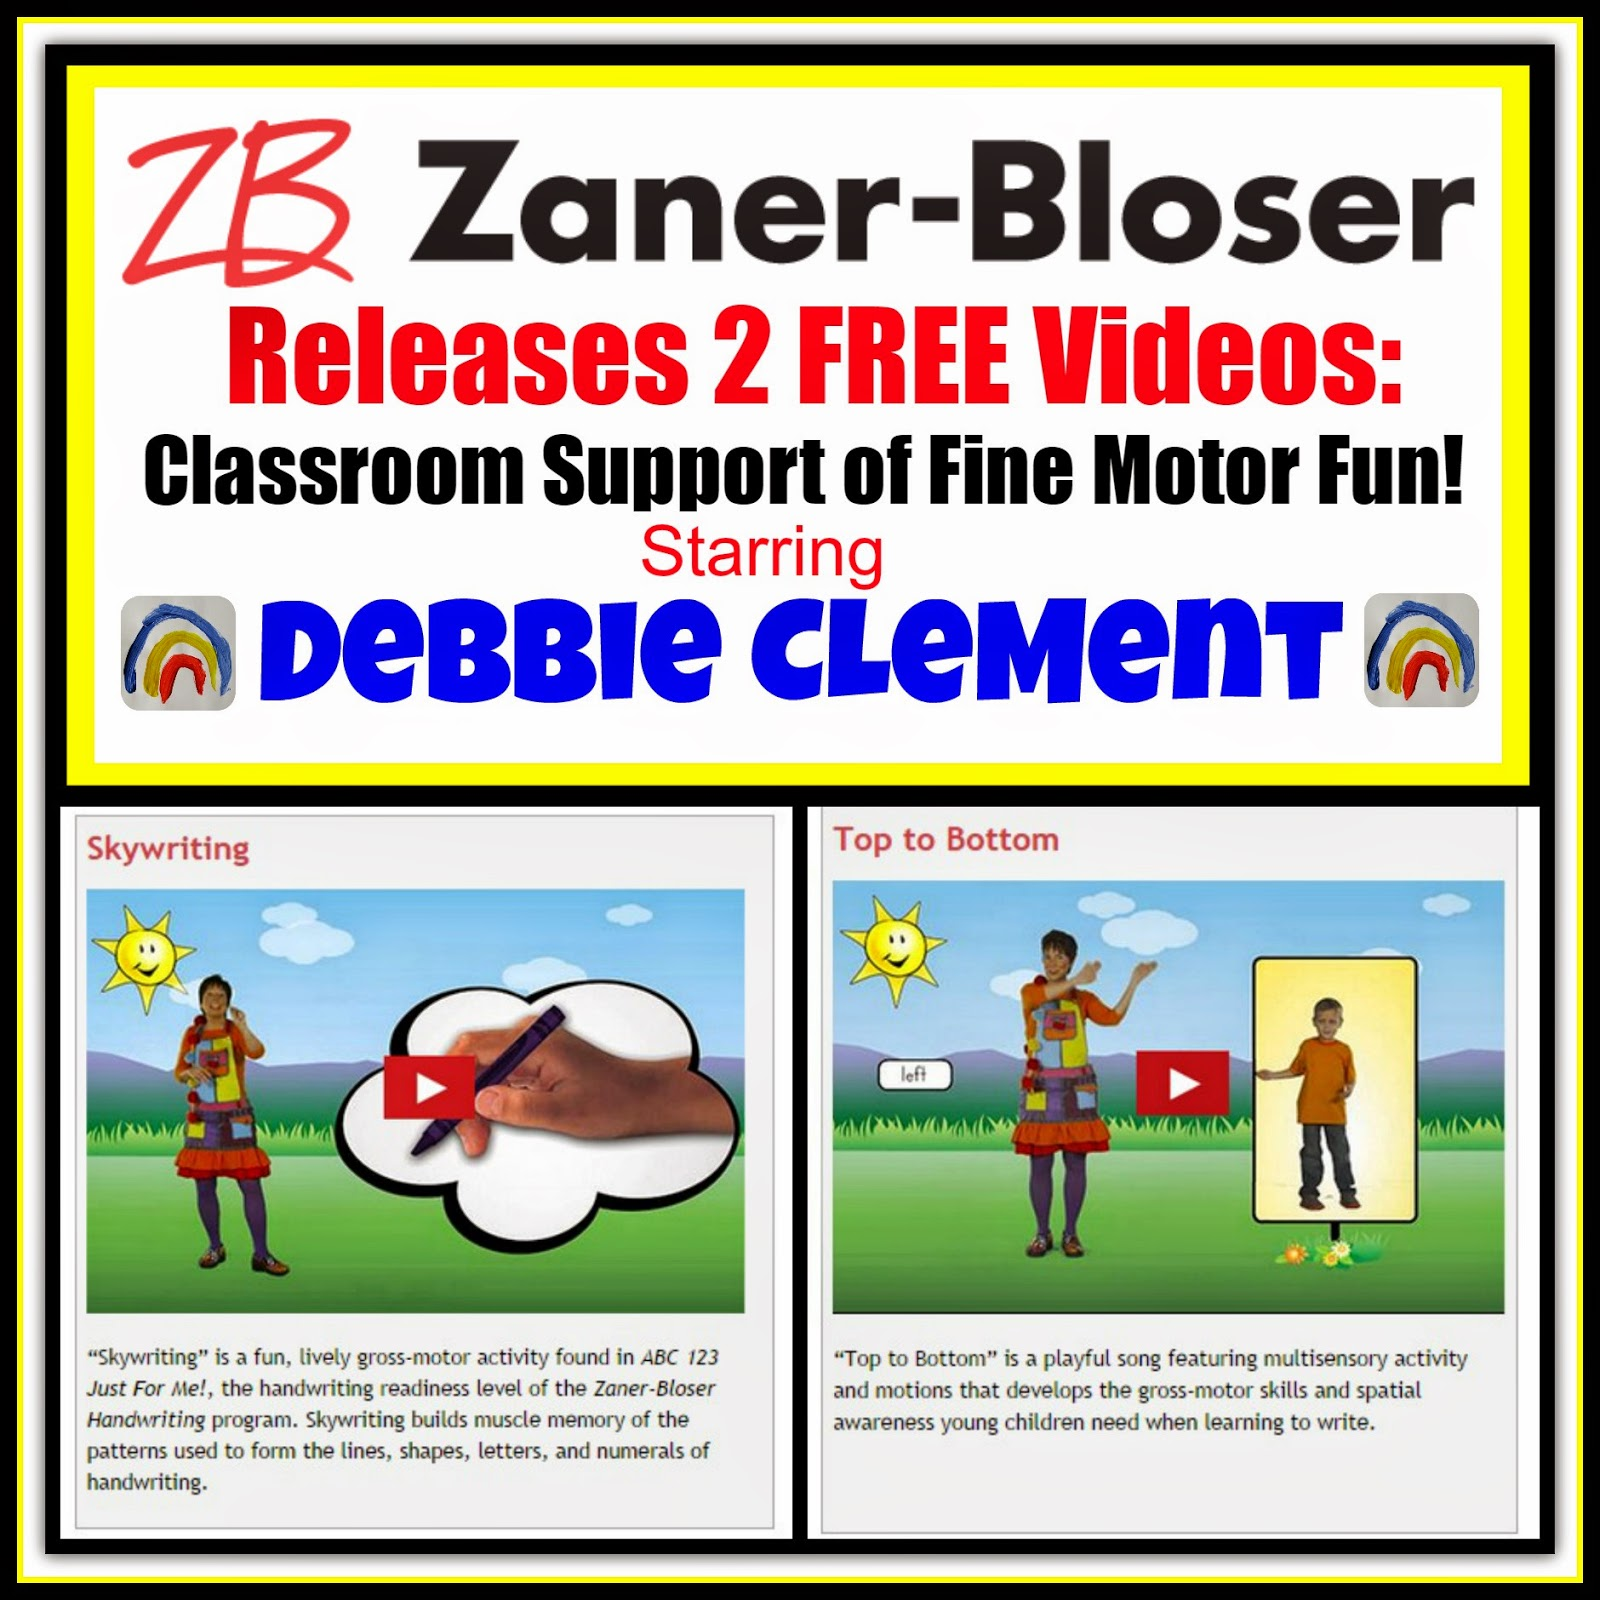 Zaner-Bloser FREE Videos on Fine Motor Fun thru Song and Dance